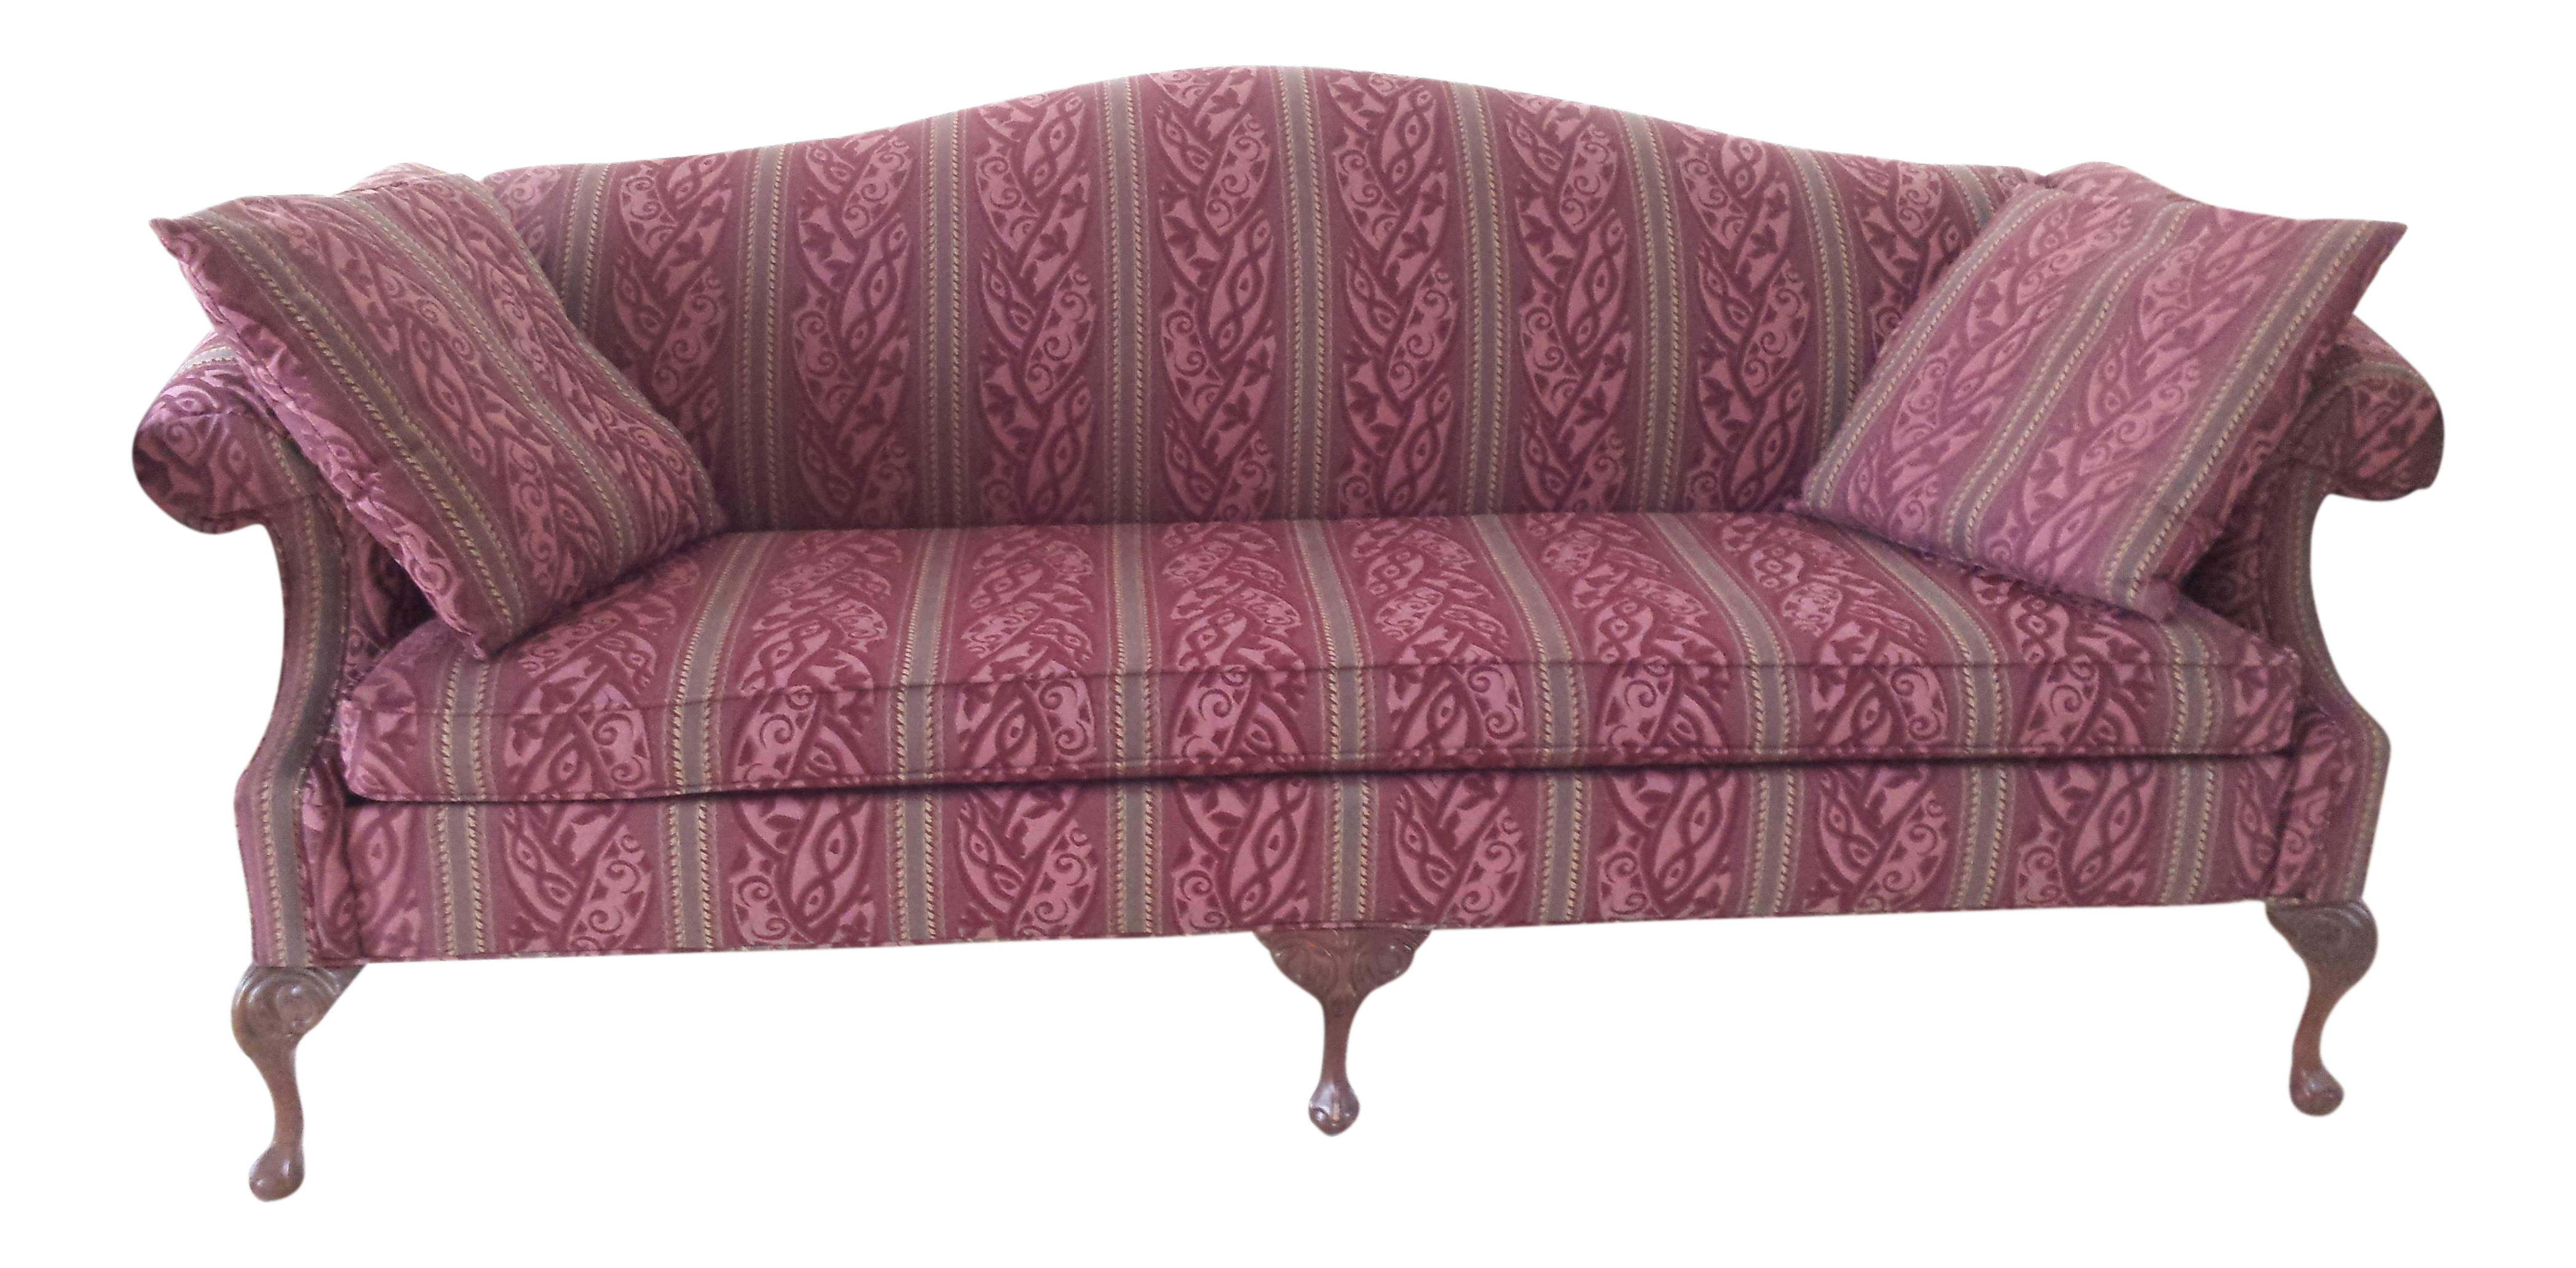 Queen Anne Sofa U0026 Wingback Chair   A Pair   Image 4 Of 11